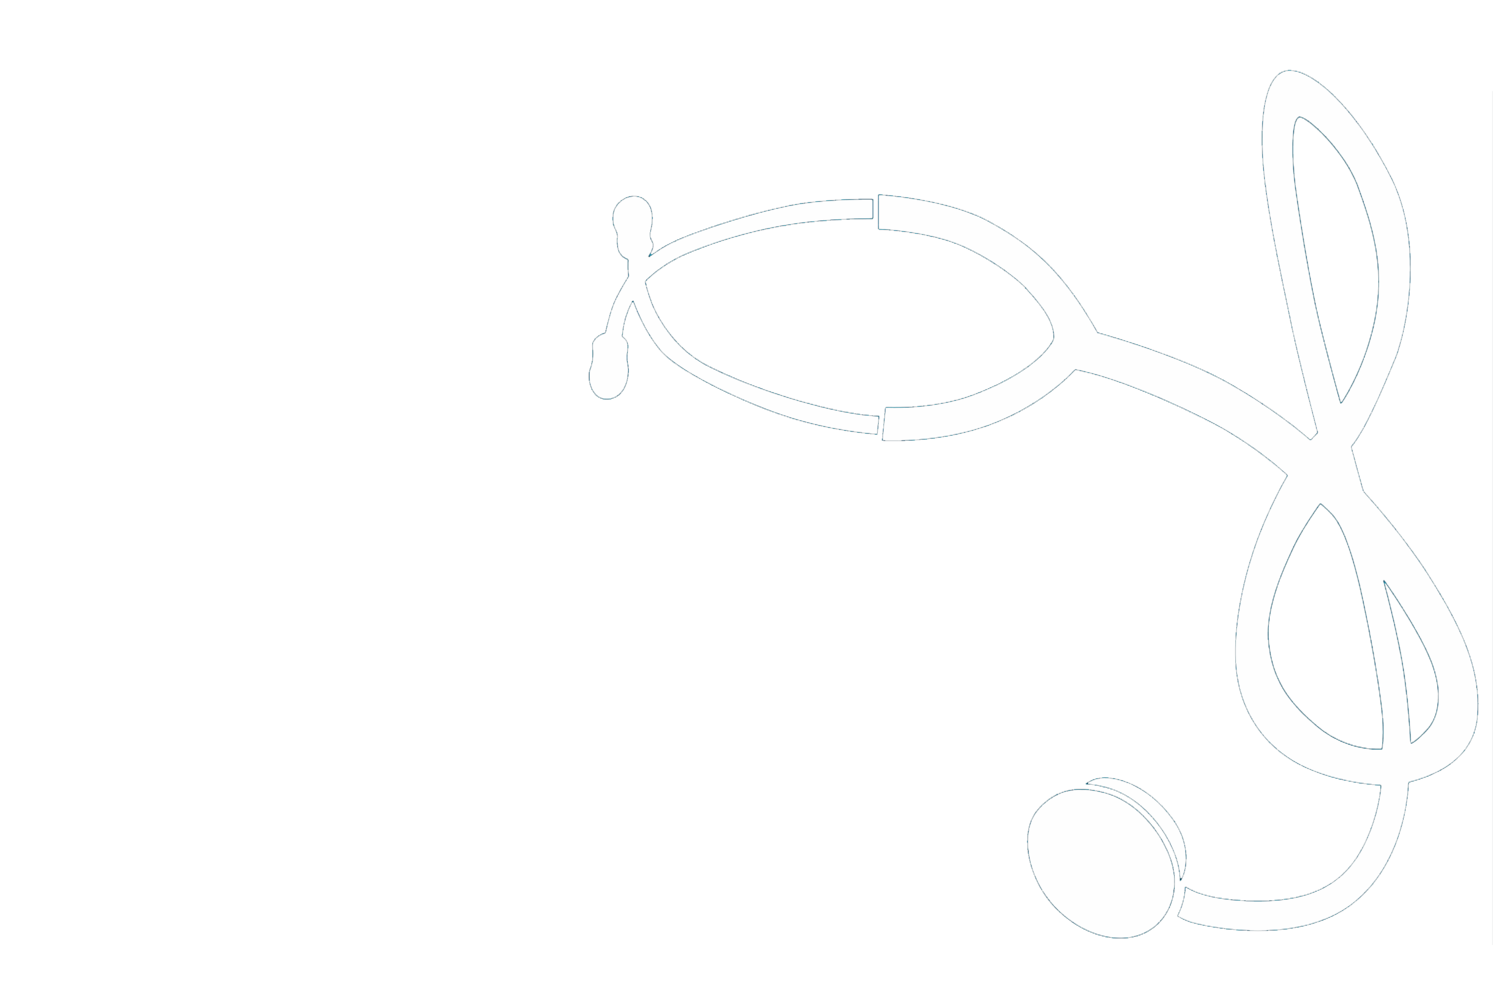 AUSTRALIAN MEDICAL STUDENTS' ORCHESTRA